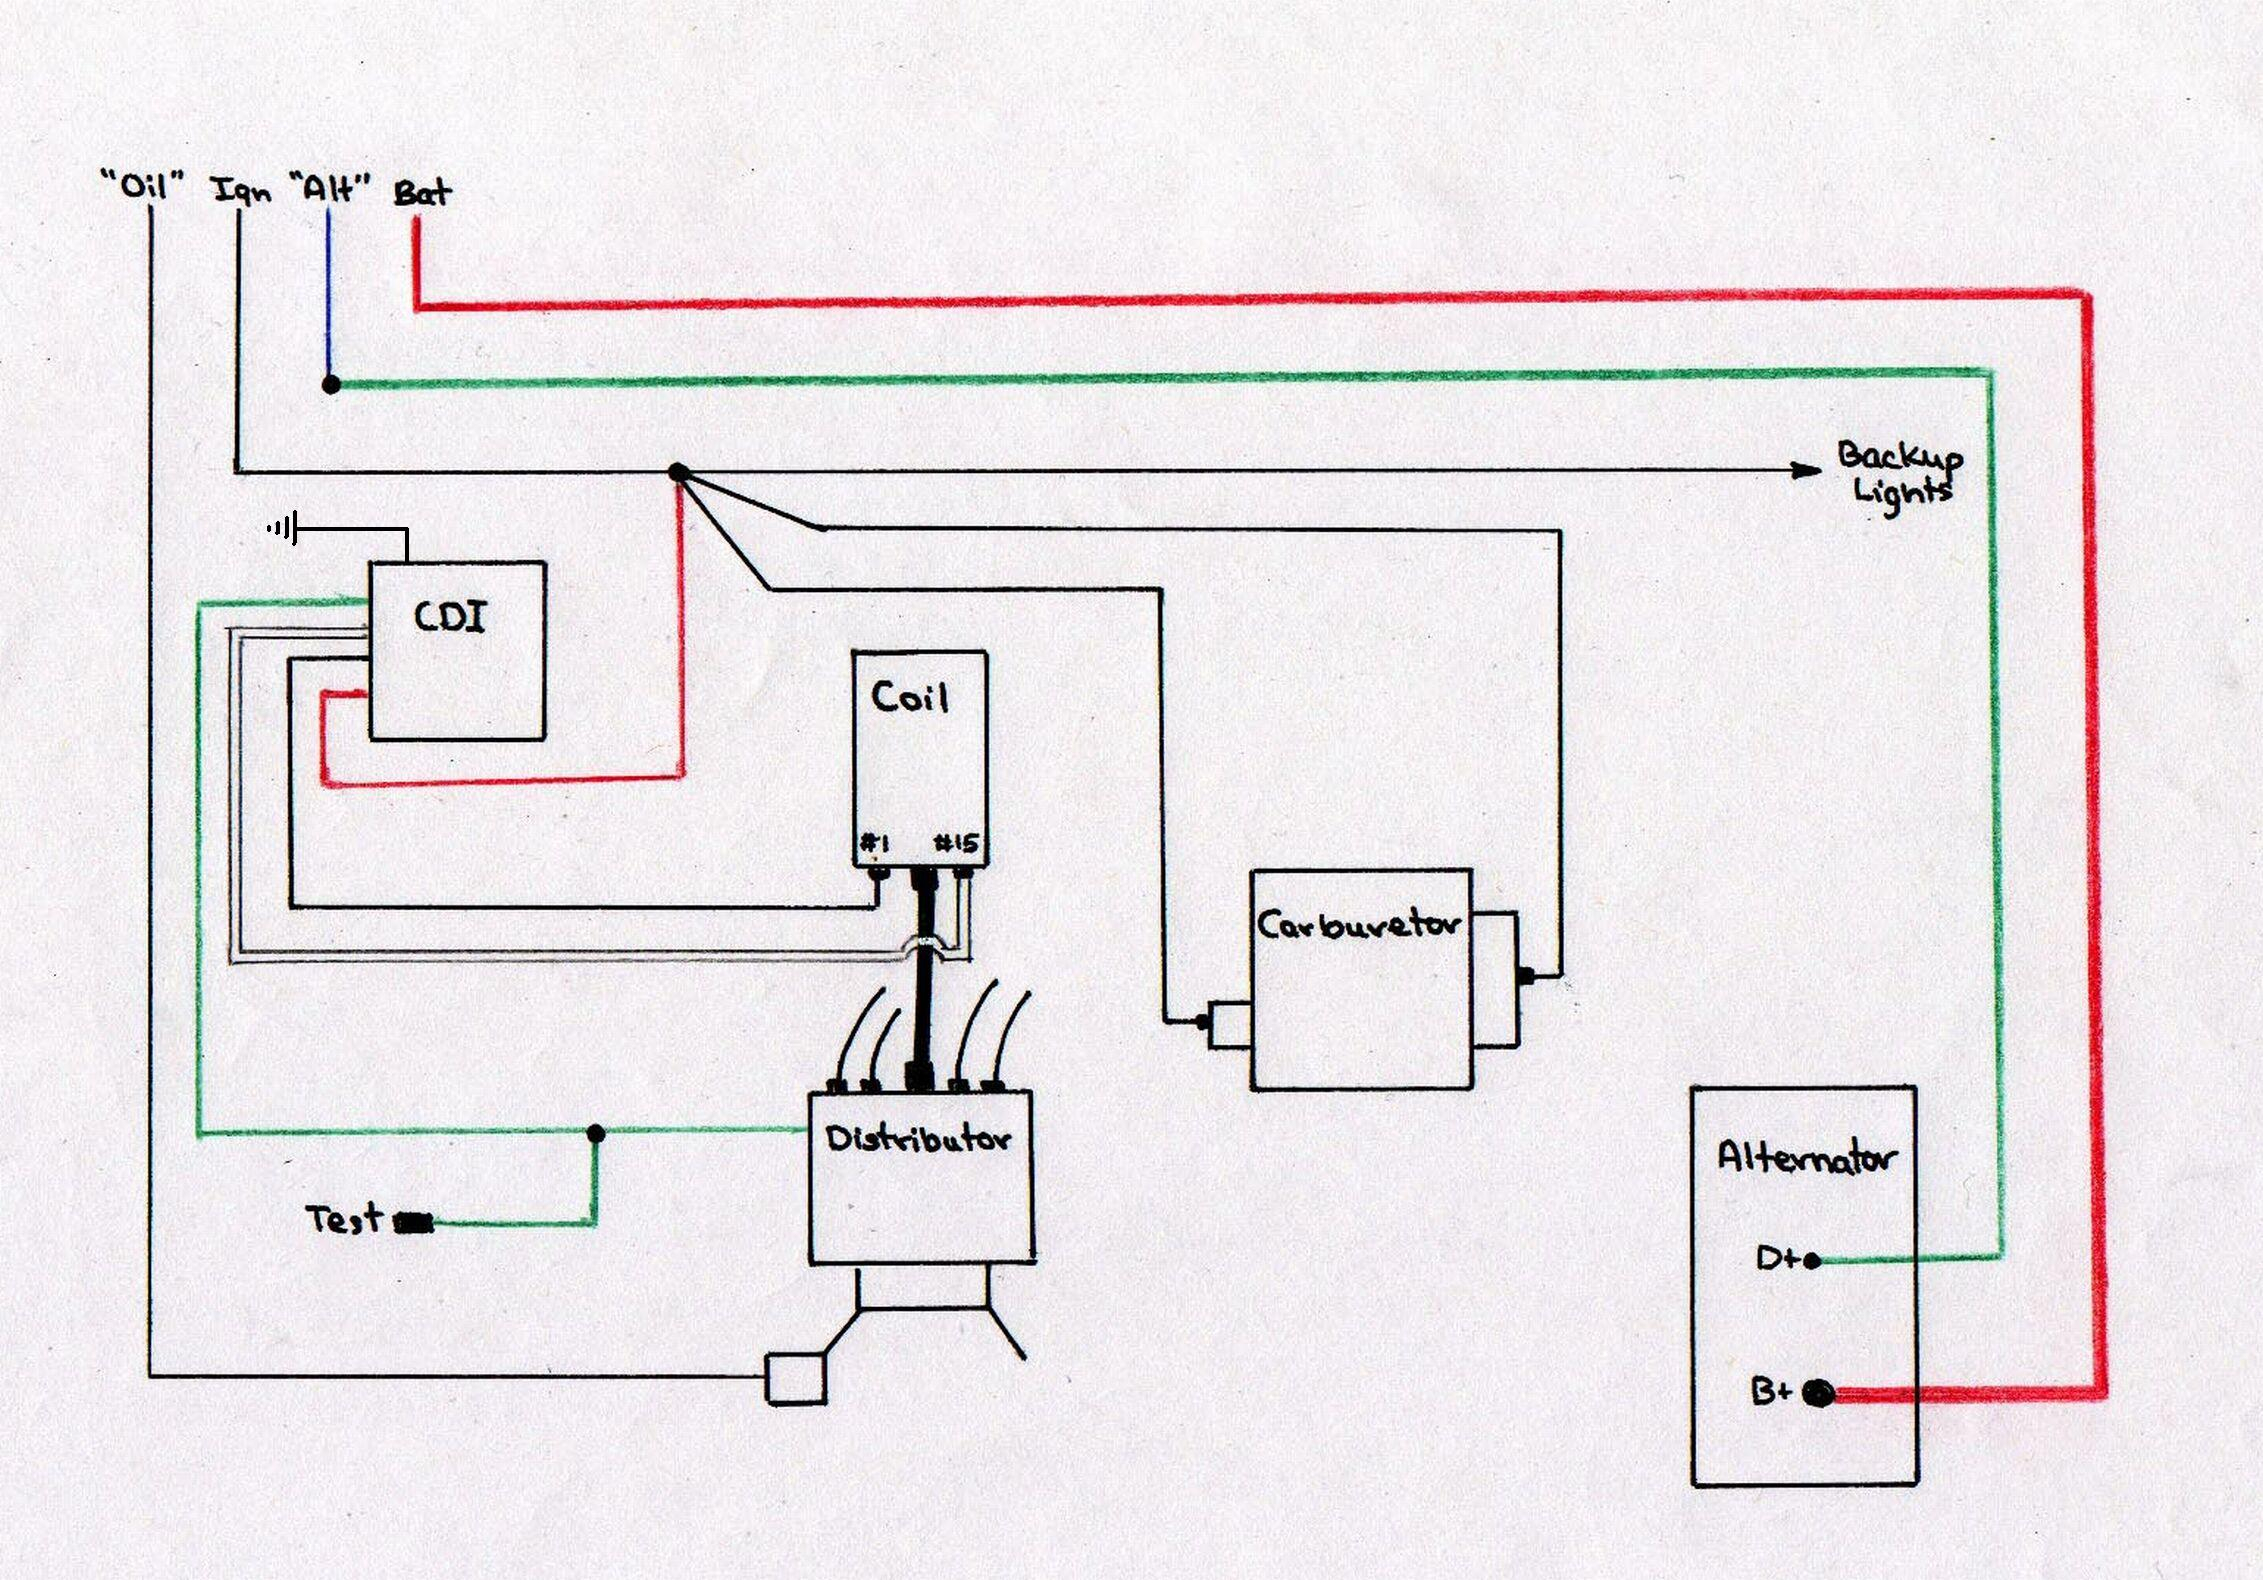 CDI  Pin Cdi Wiring Diagram Coil on